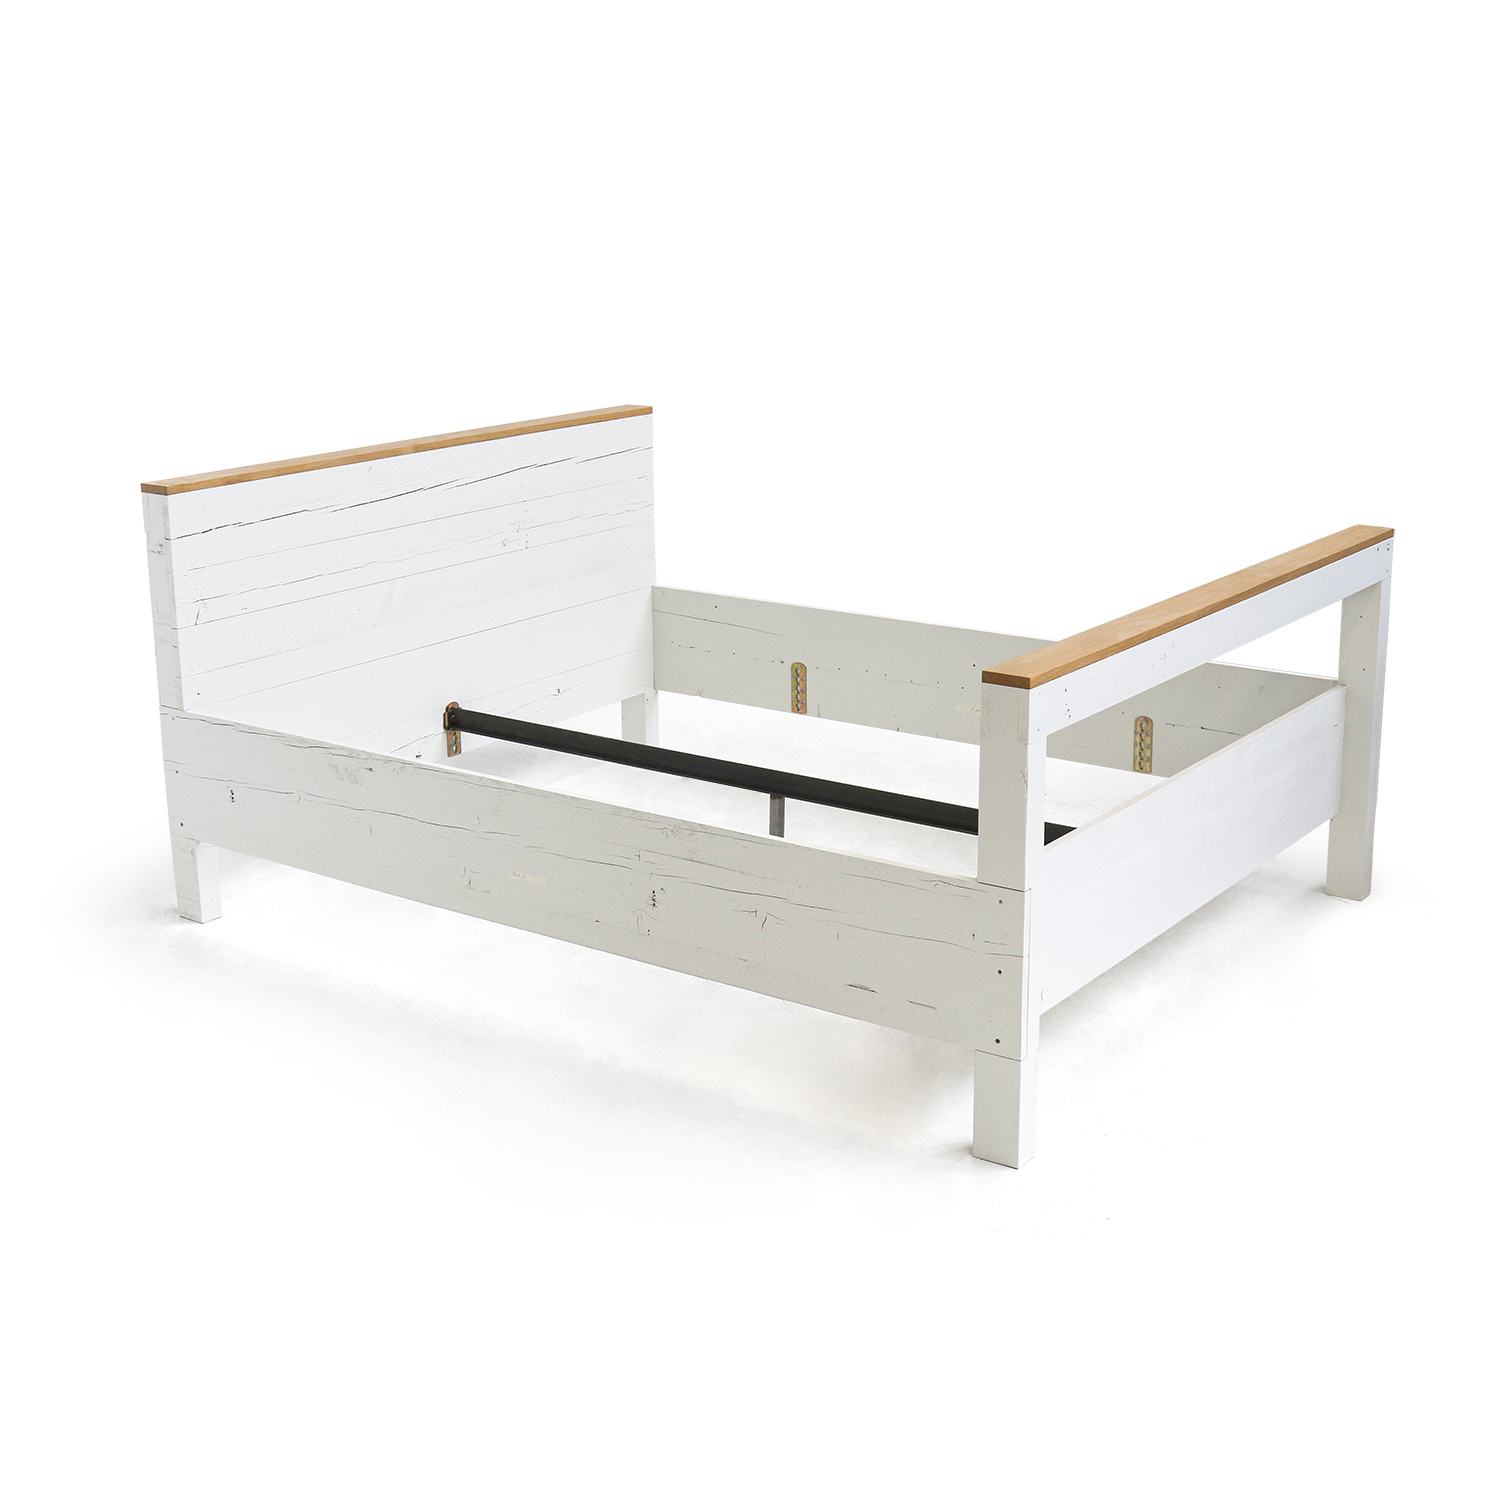 01_Plankenbed_in_sloophout_perspective01_thumbnail